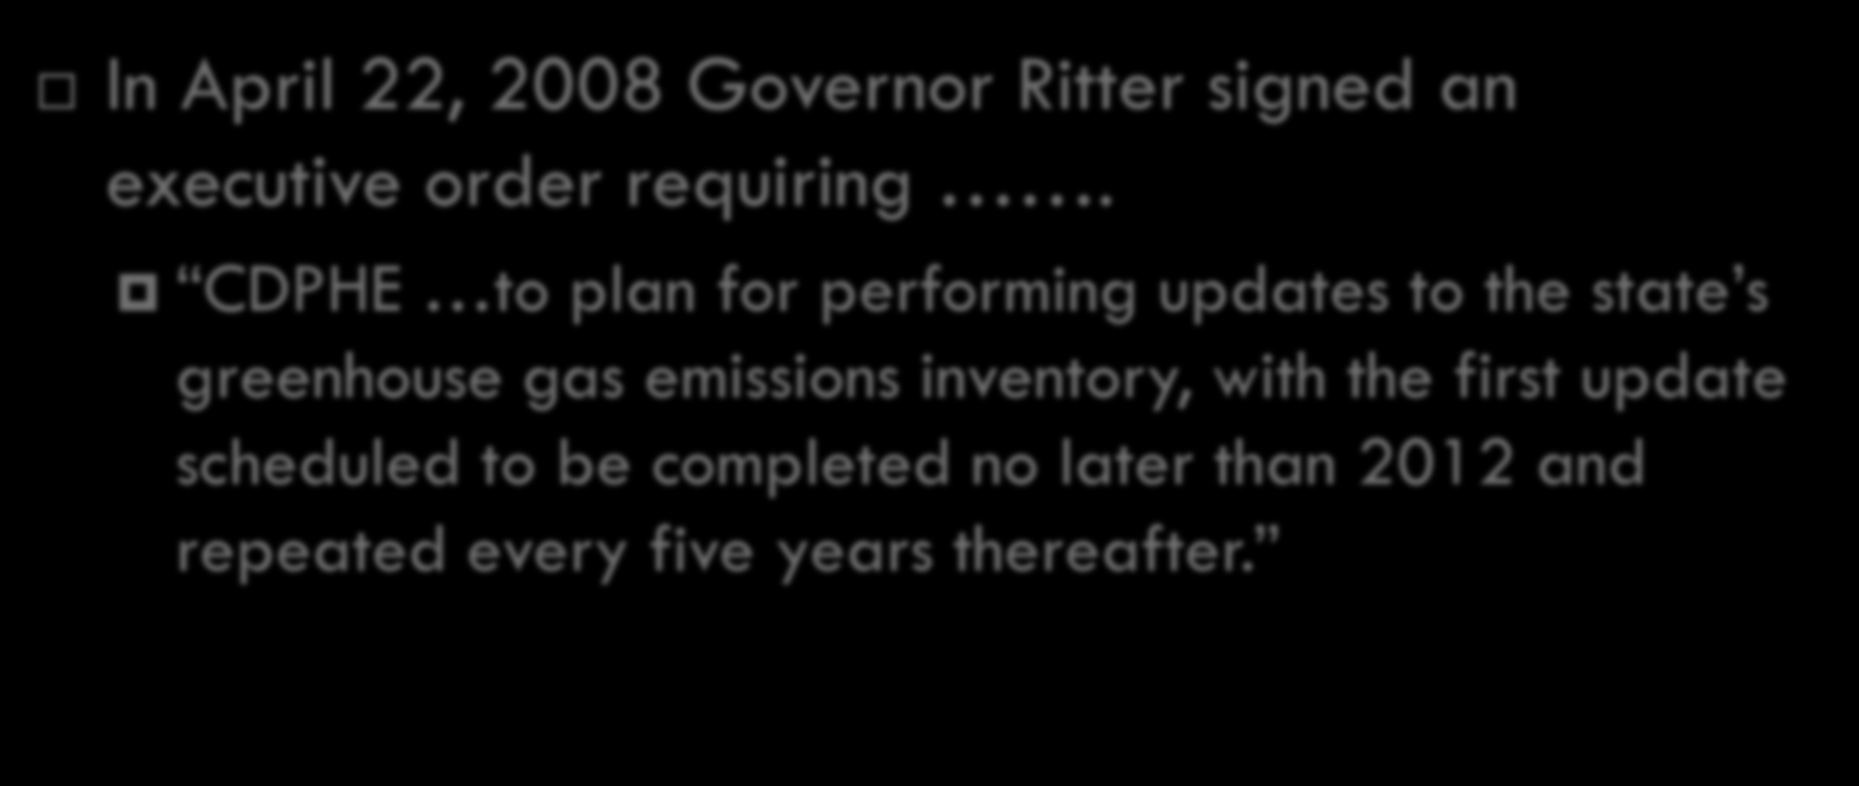 Executive Order 7 In April 22, 2008 Governor Ritter signed an executive order requiring.